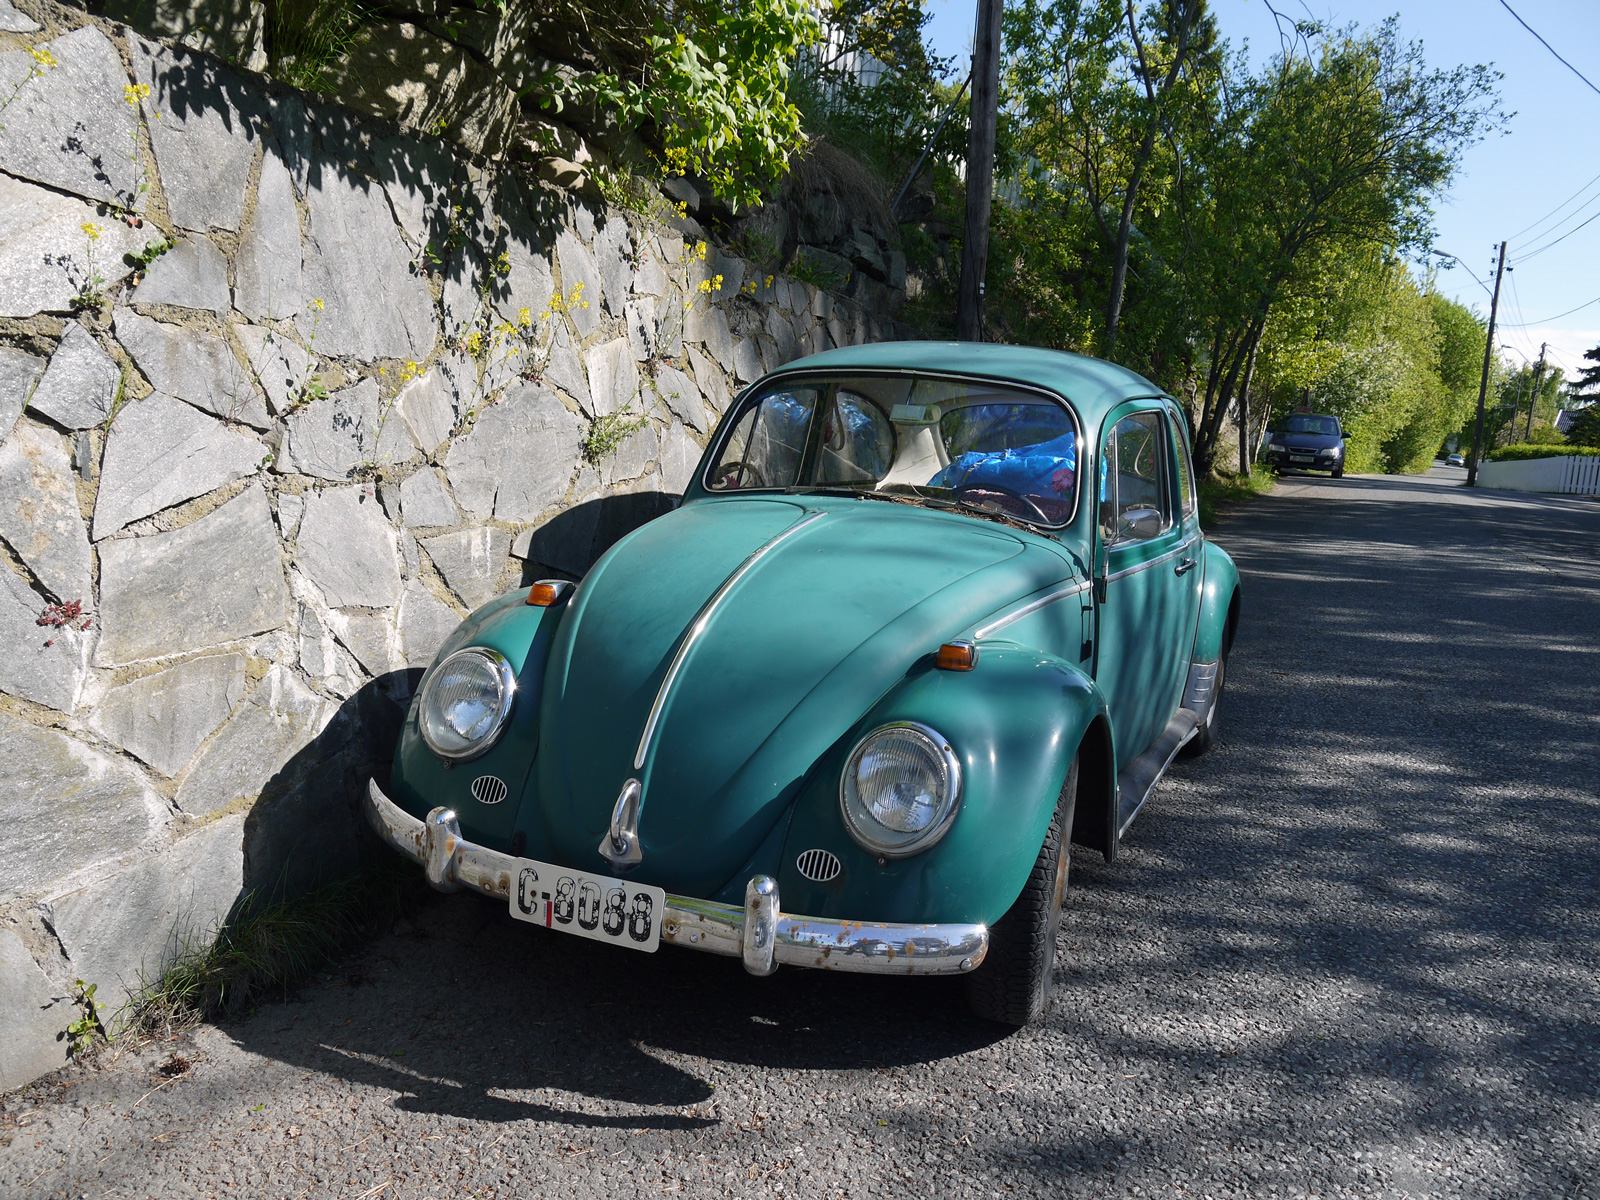 1966 Volkswagen 1300 Sedan Beetle Boble type 1 Oslo